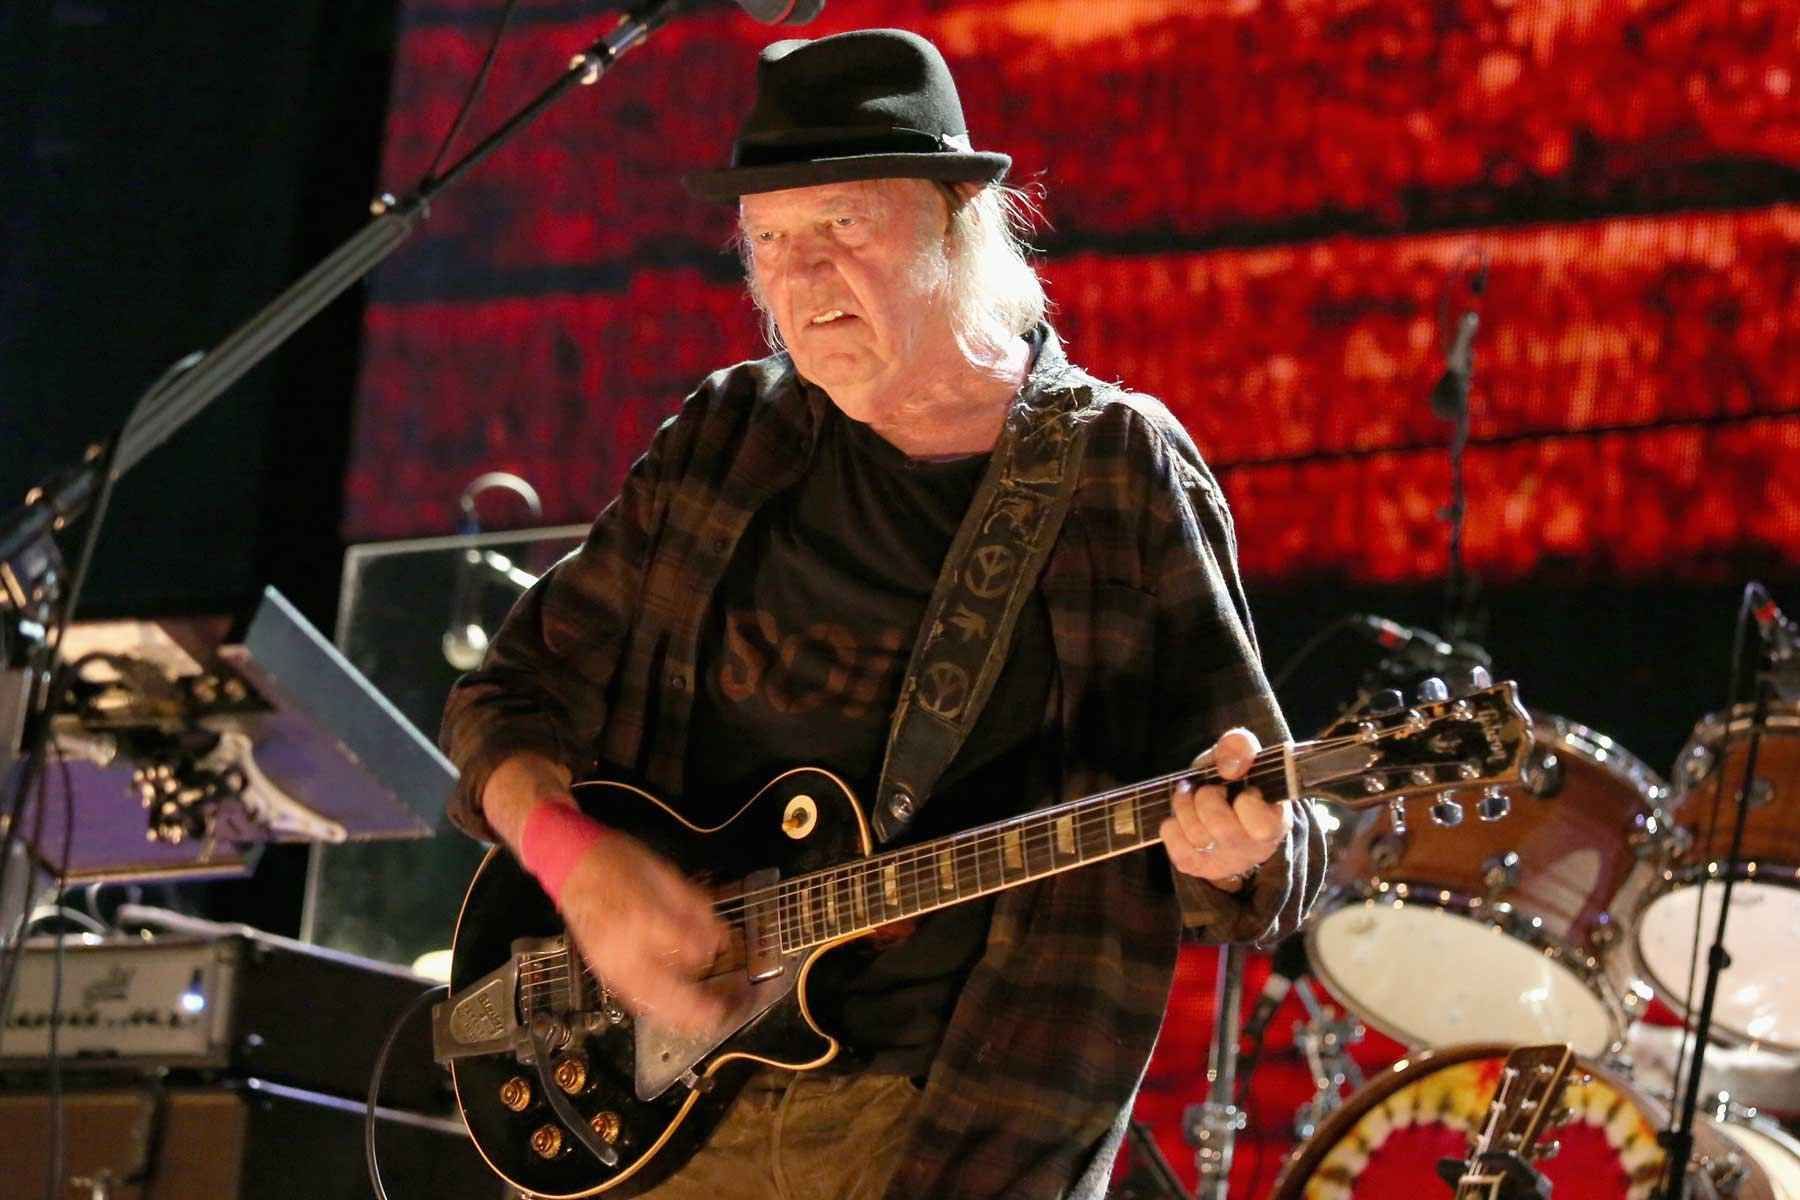 Flashback: The Other Neil Young Song in His Lawsuit Against Donald Trump